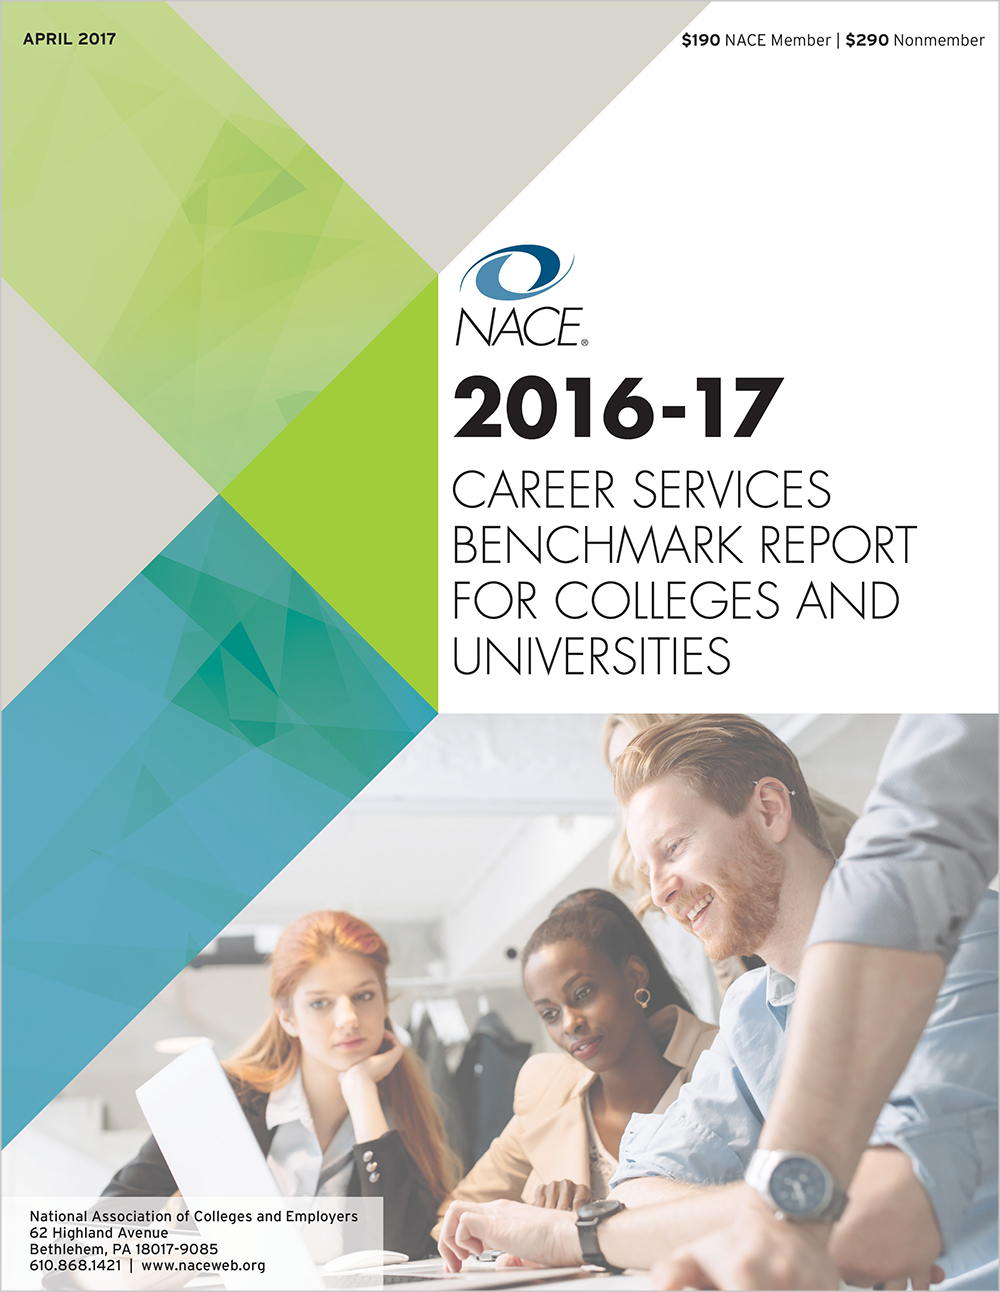 2016-17 Career Services Benchmark Report